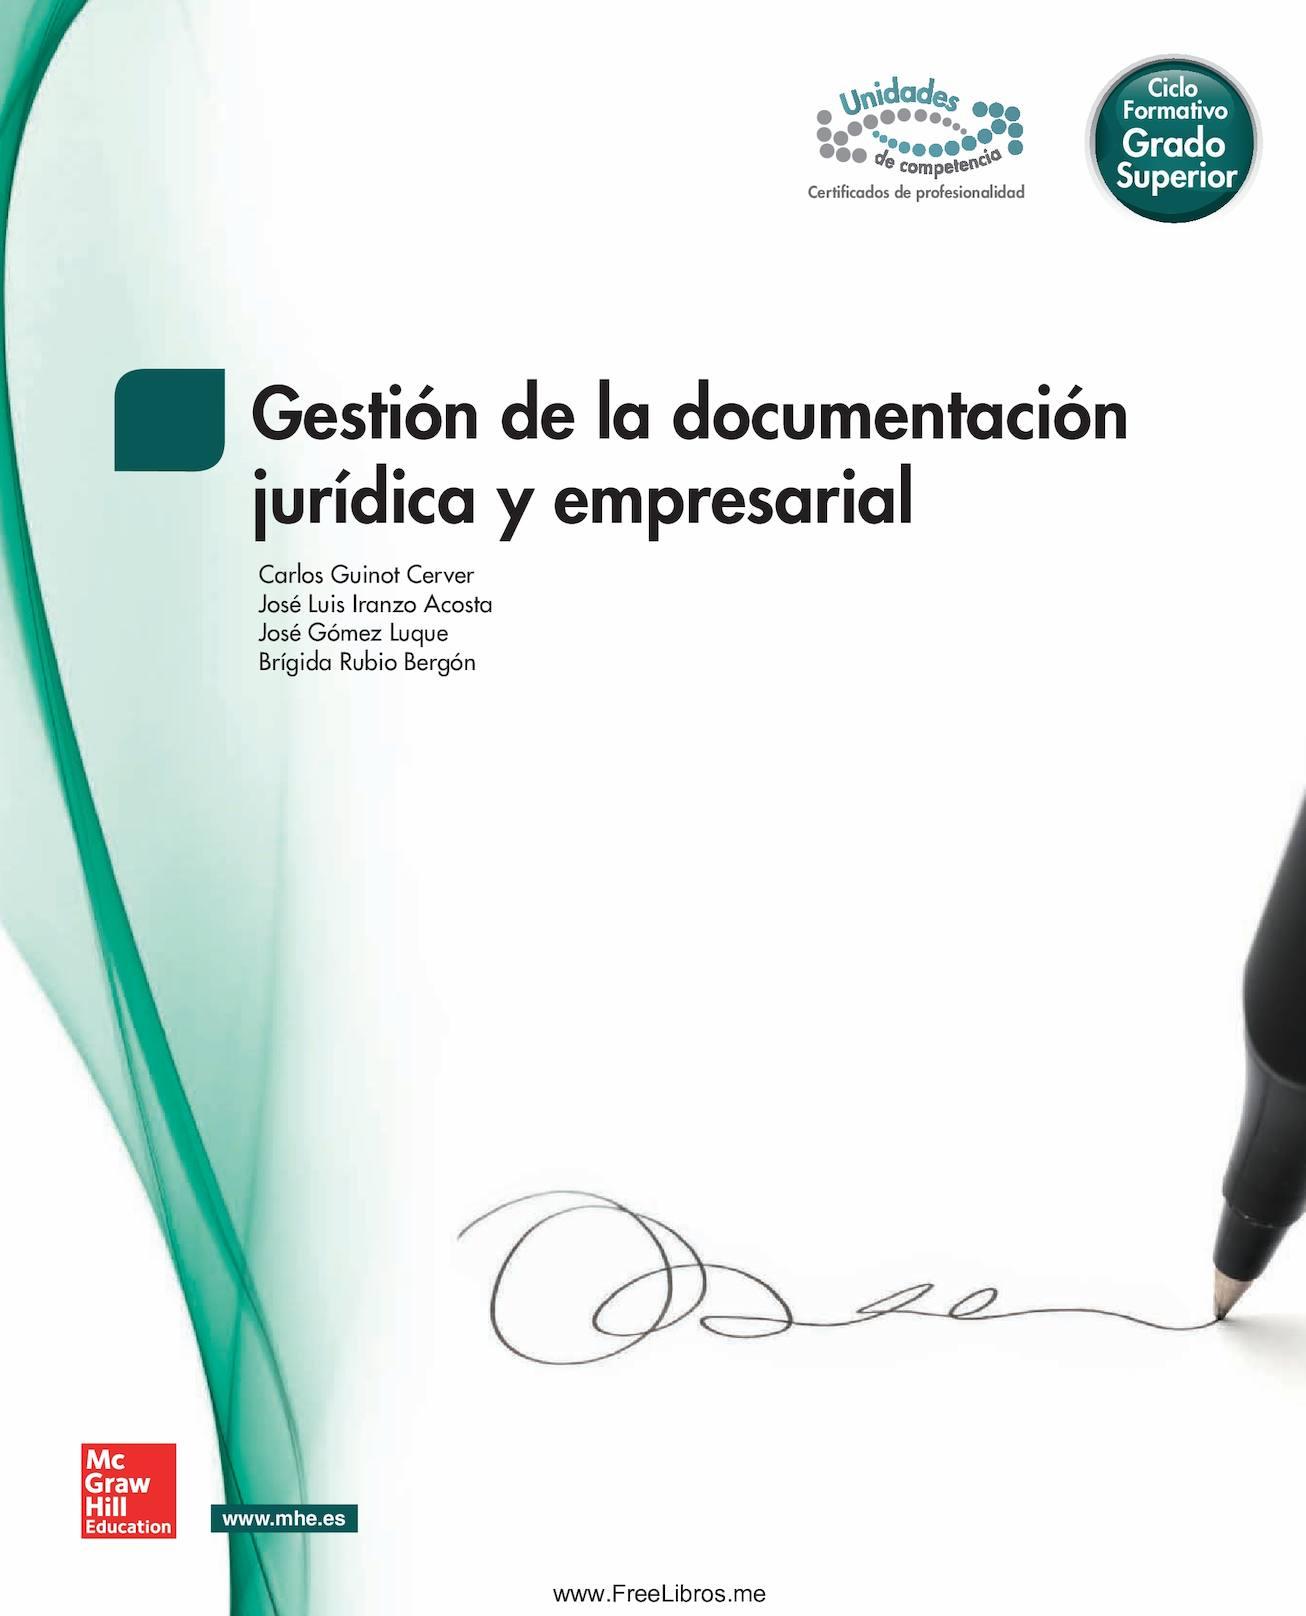 Gestion De La Documentacion Juridica Y Empresarial Mc Graw Hill 2013 Grado Superior Freelibros Org